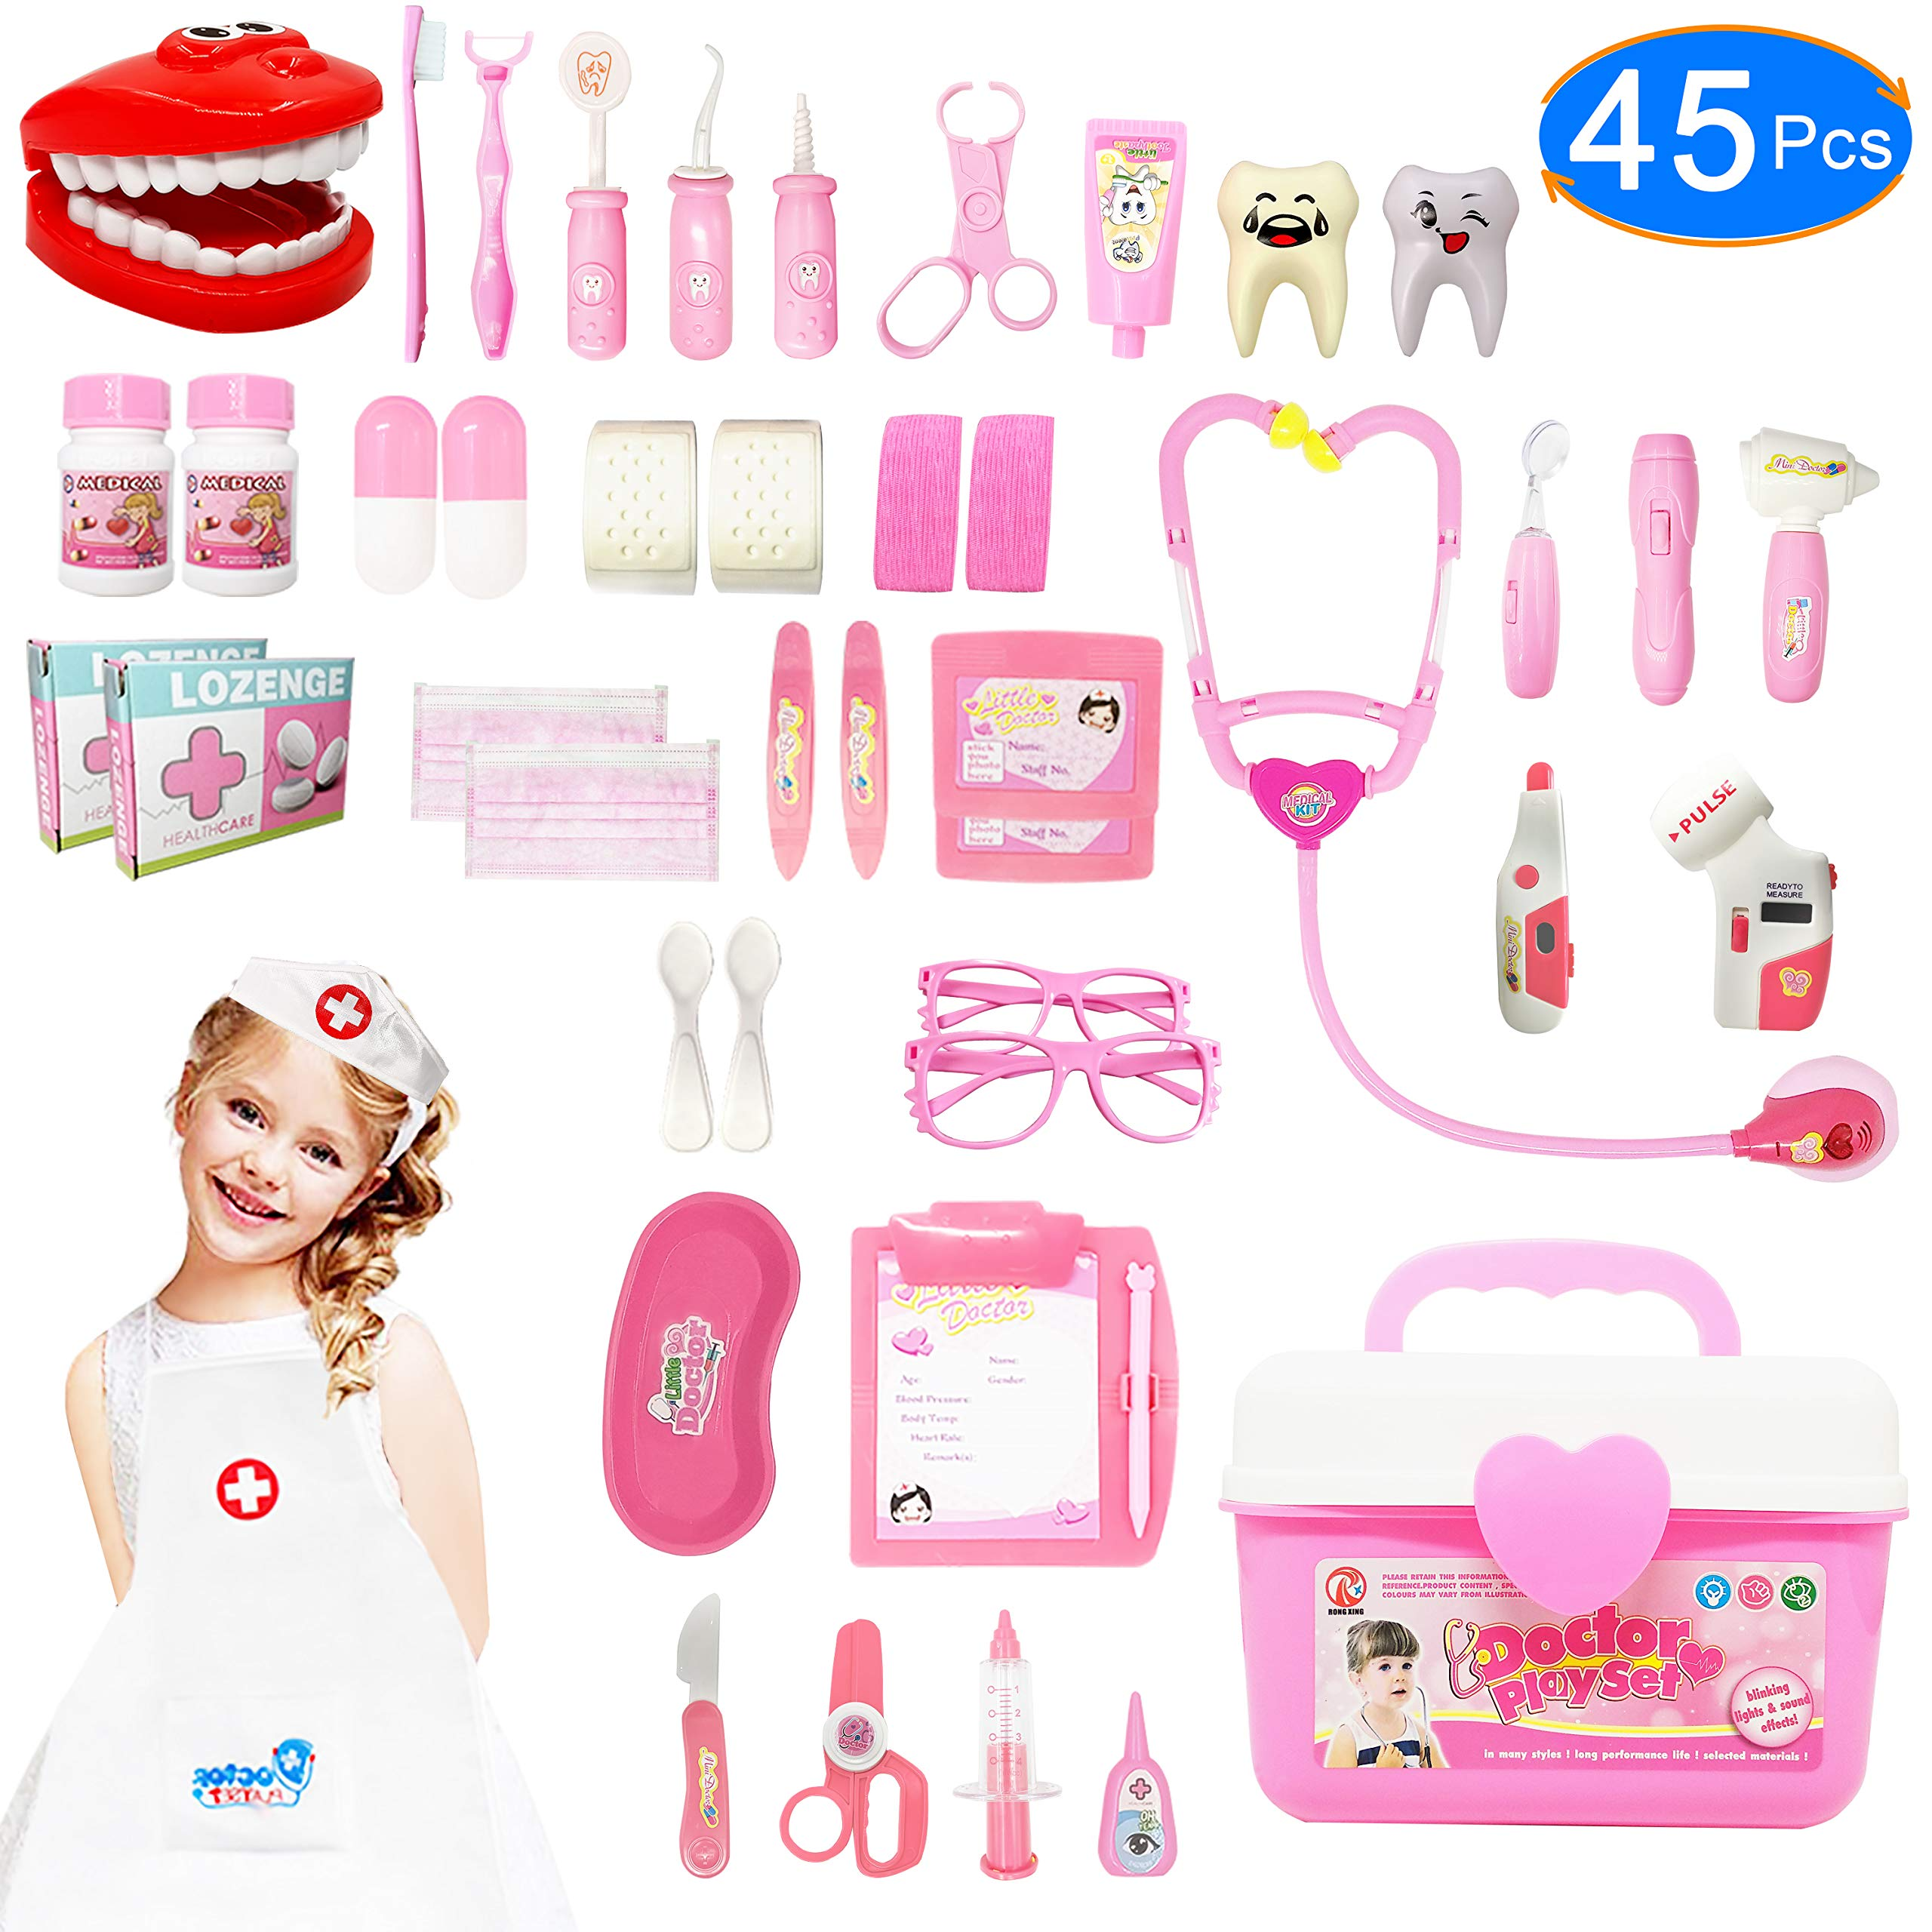 JGSY Kids Doctor Kit, 45 Pcs Pretend Play Toys Dentist Medical Educational Toy with Electronic Stethoscope and Coat, School Classroom and Doctor Roleplay Dress-Up by JGSY